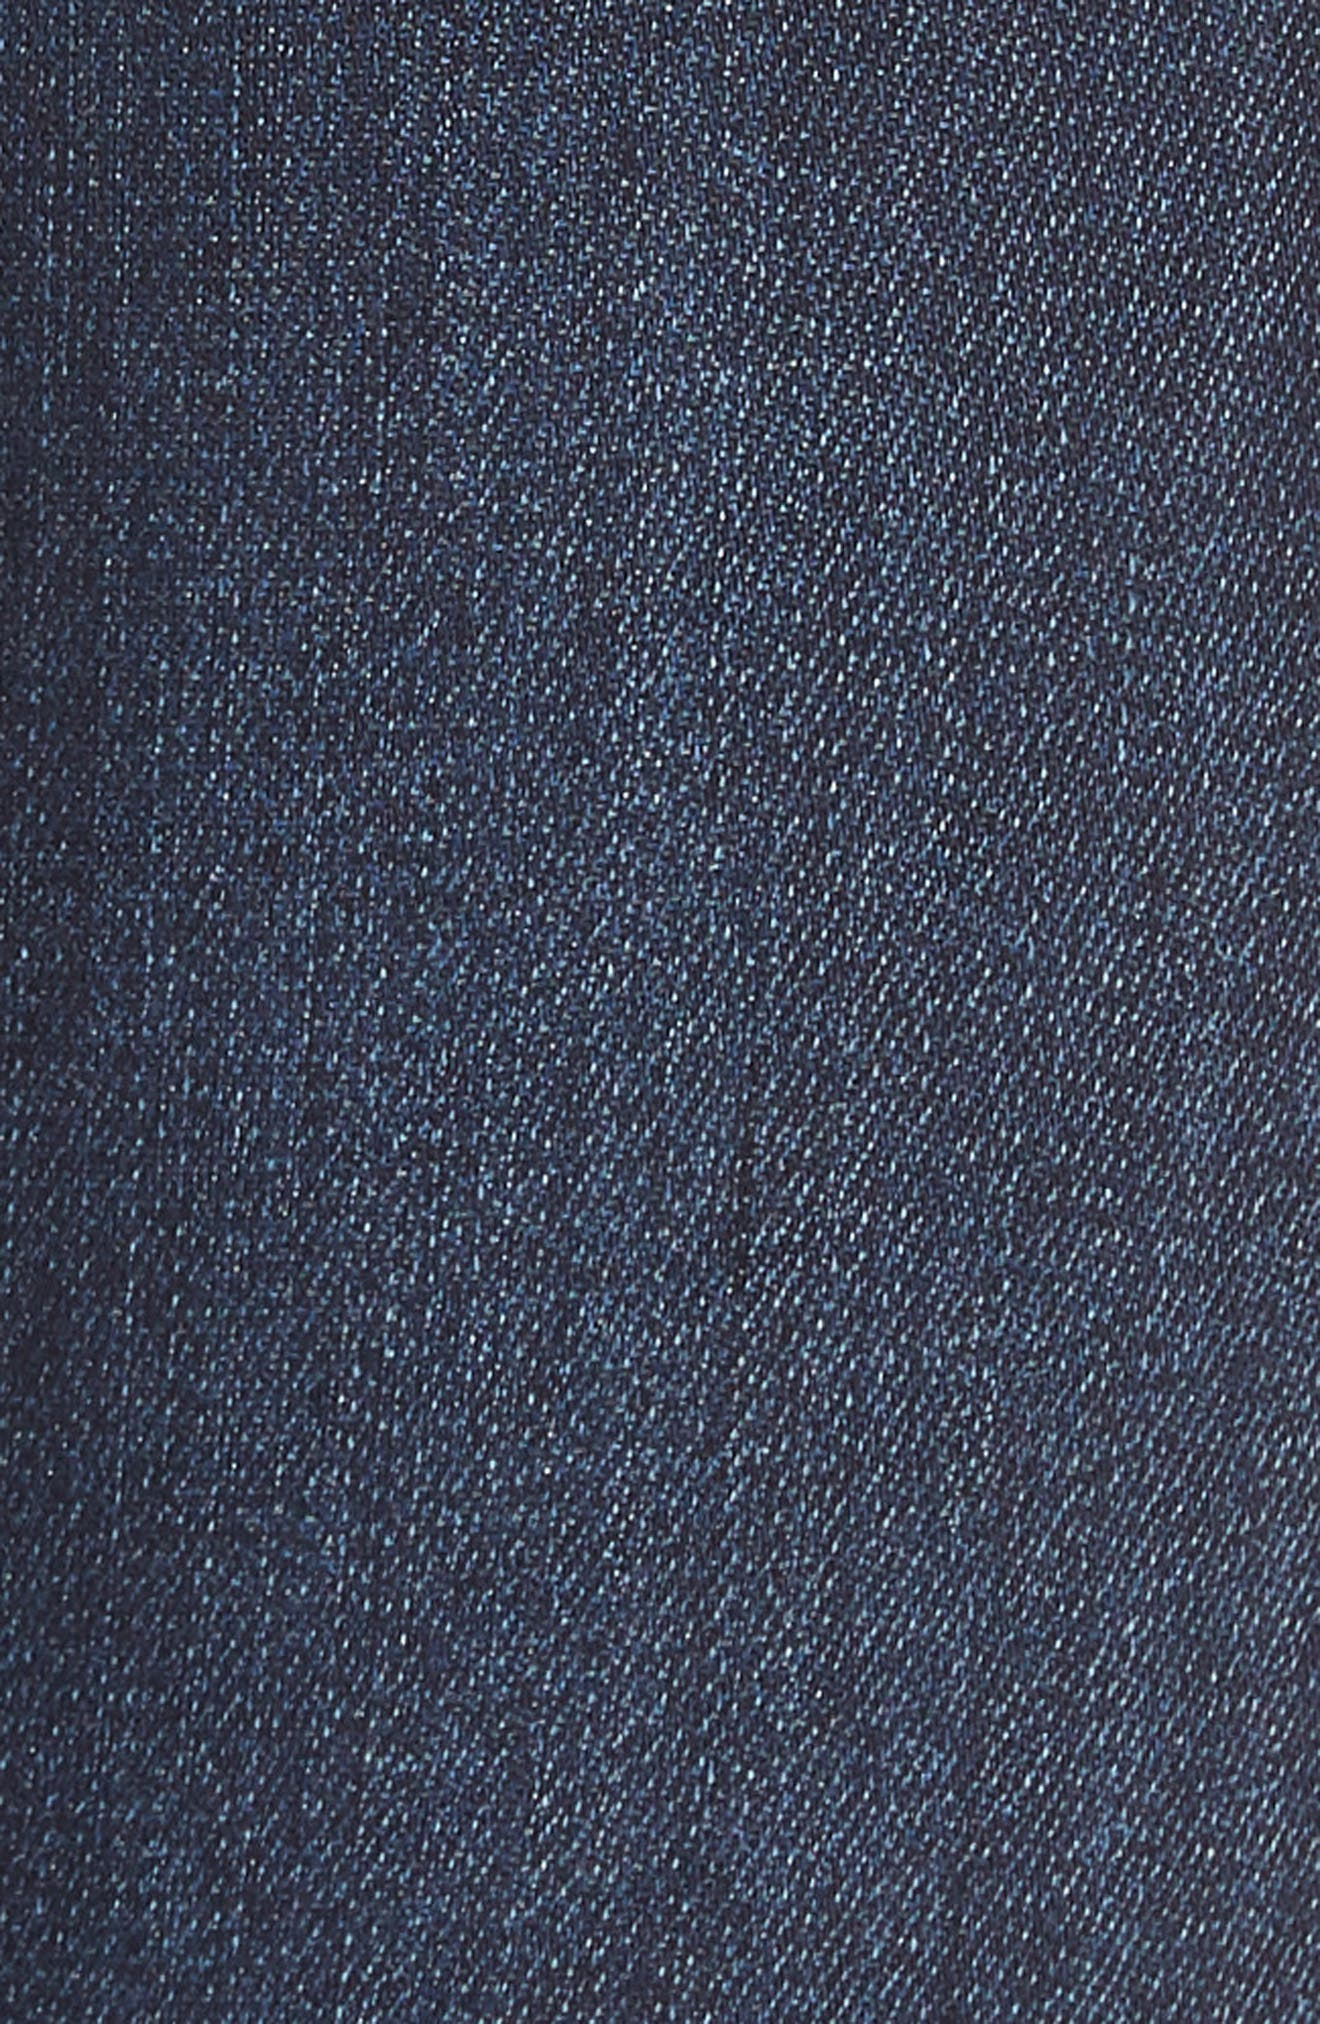 Ab-solution Skinny Jeans,                             Alternate thumbnail 6, color,                             402